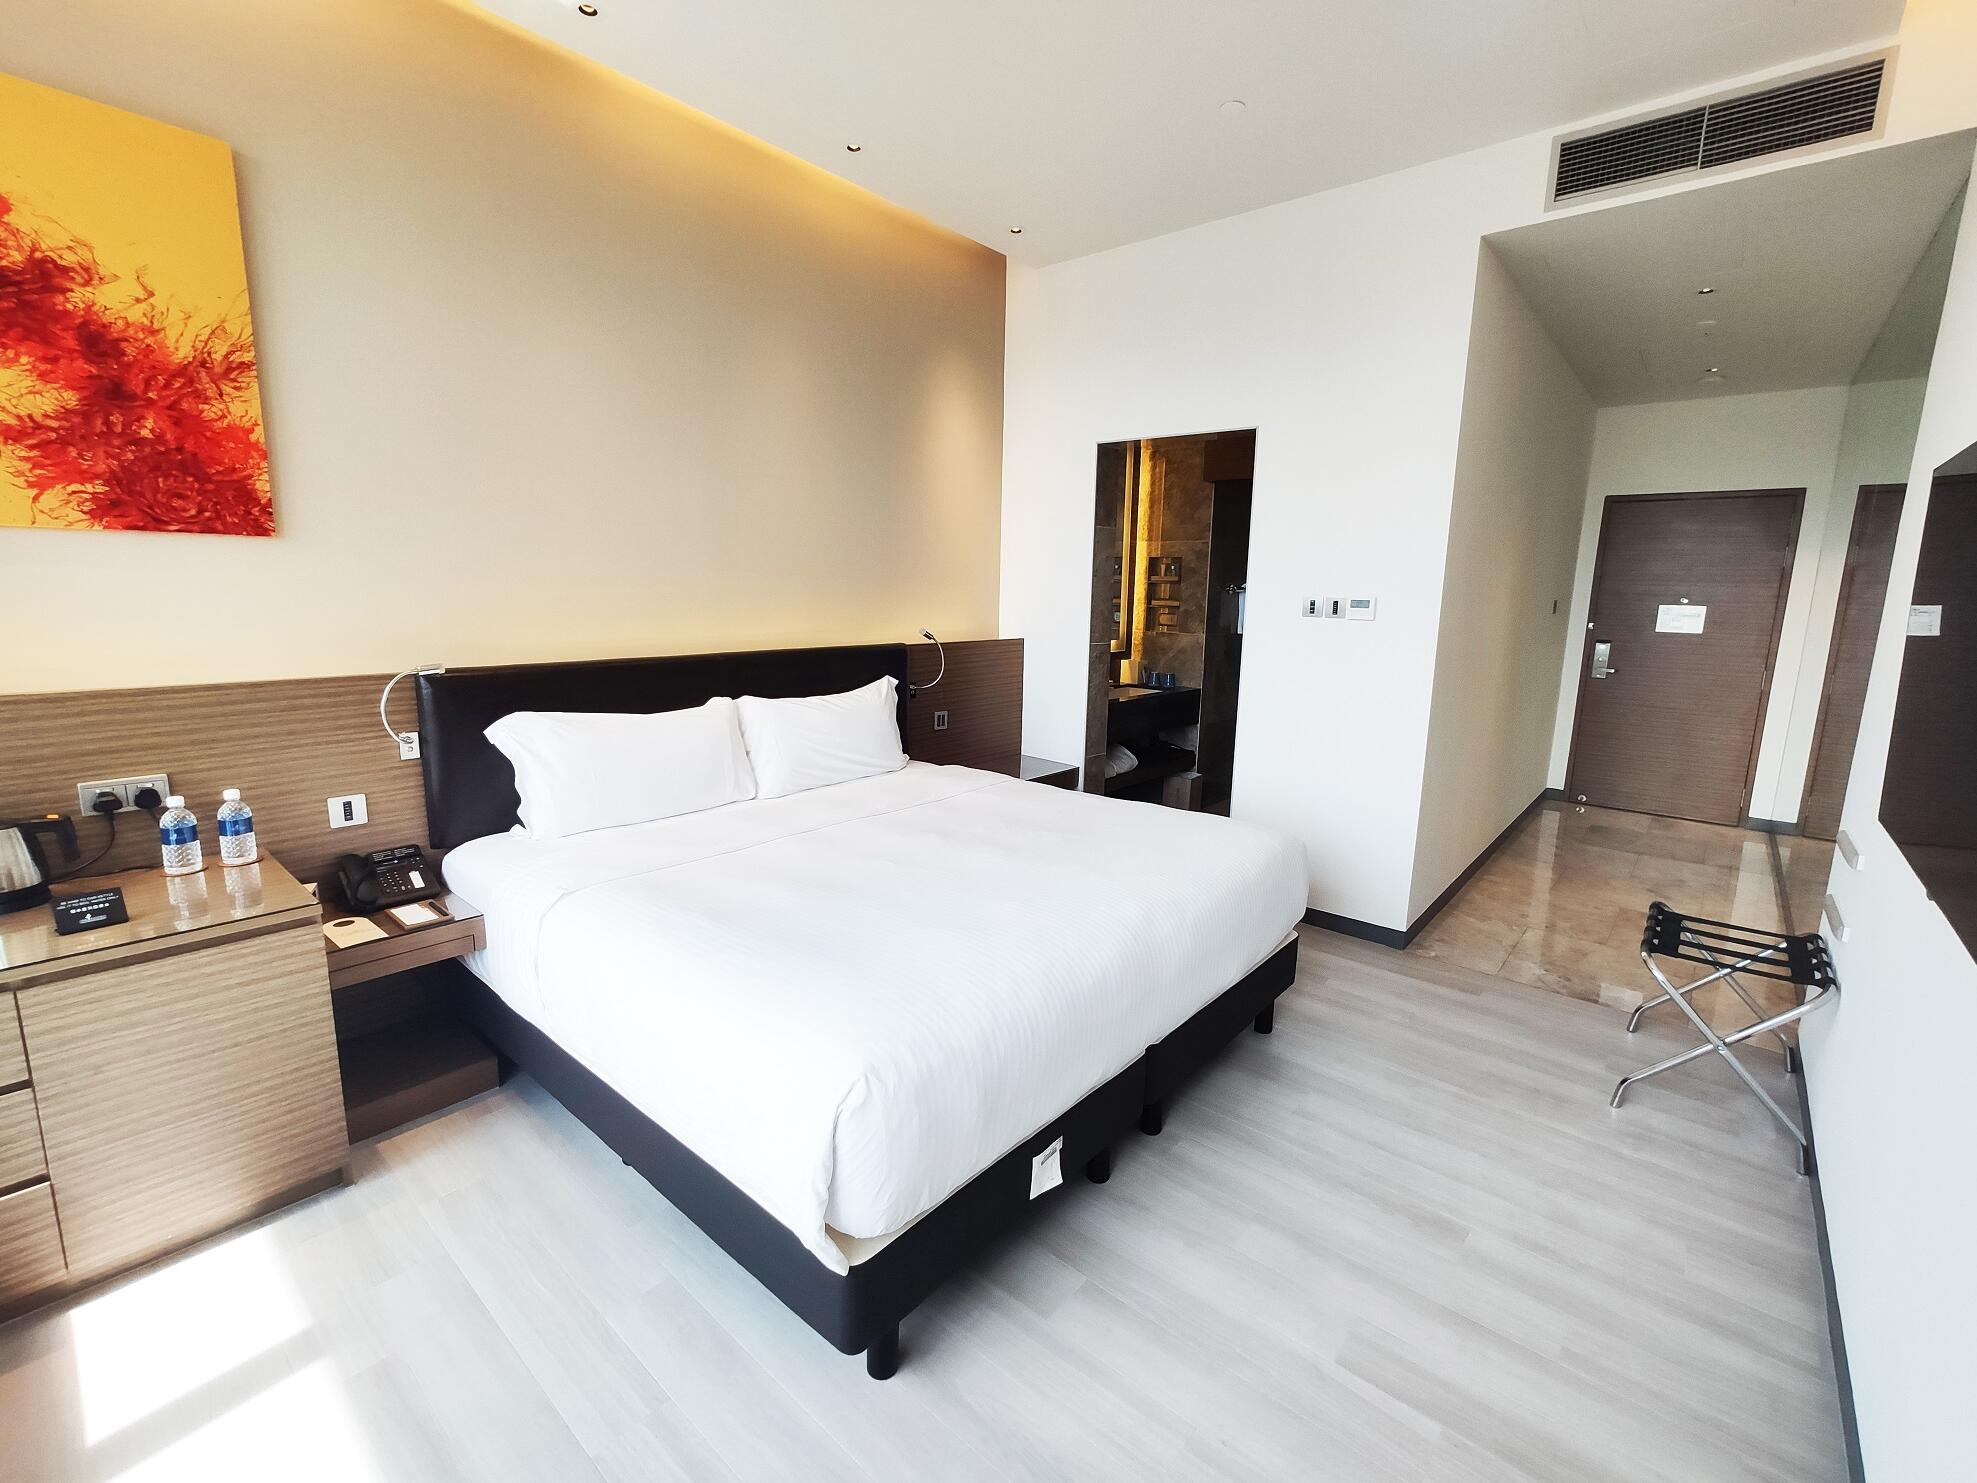 Interior of Skyline suite at one farrer hotel